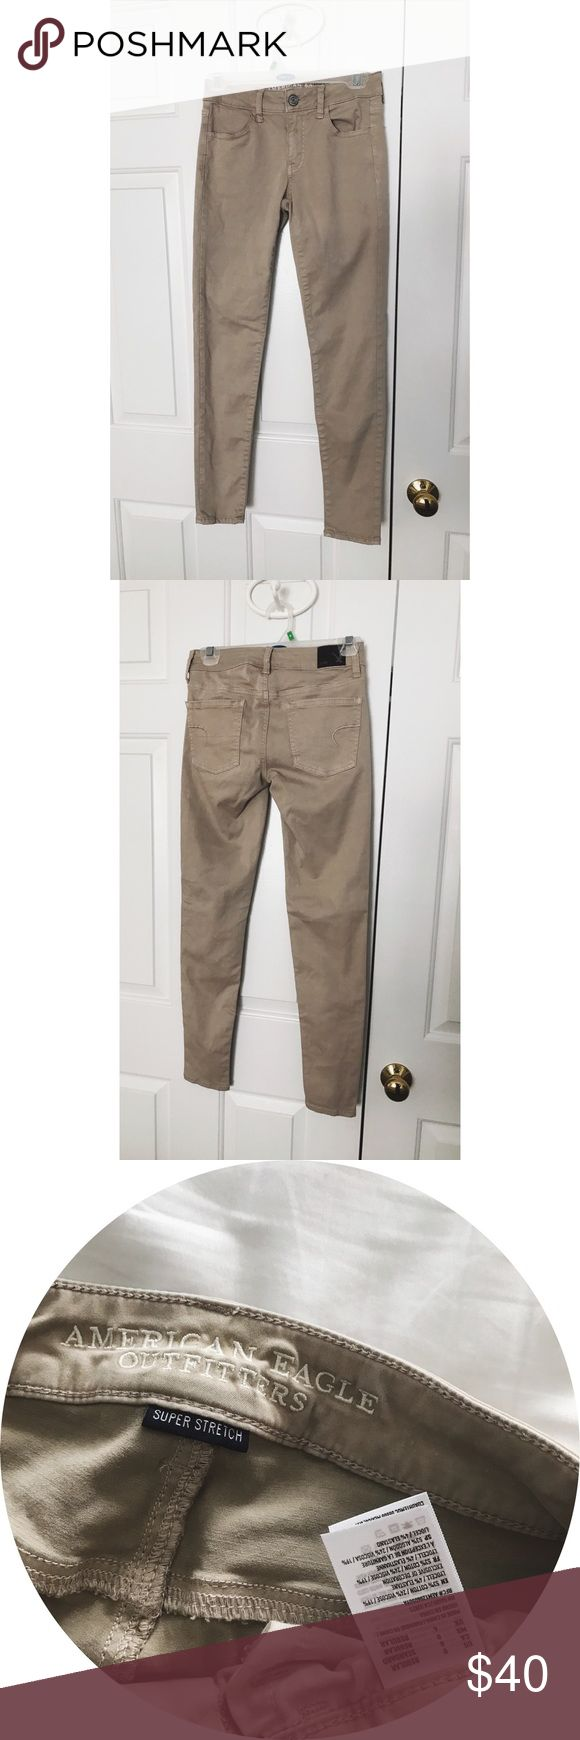 """American Eagle Super Stretch Khaki Jeggings nwot, never worn. known as """"super stretch soft jeggings"""". although american eagle sells various khakis, this specific pair of khakis are no longer sold online or in stores. perfect addition to a work/school uniform or every day wear!  🚫NO TRADES / HOLDS 🚫NO MODELING 🚫NO PP / MERC / OTHER PAYMENT OPTIONS ✅Questions welcomed (other than those listed above) ✅1-2 business day(s) shipping ✅offers welcome / price negotiable ✅3 items or more - 15% off…"""